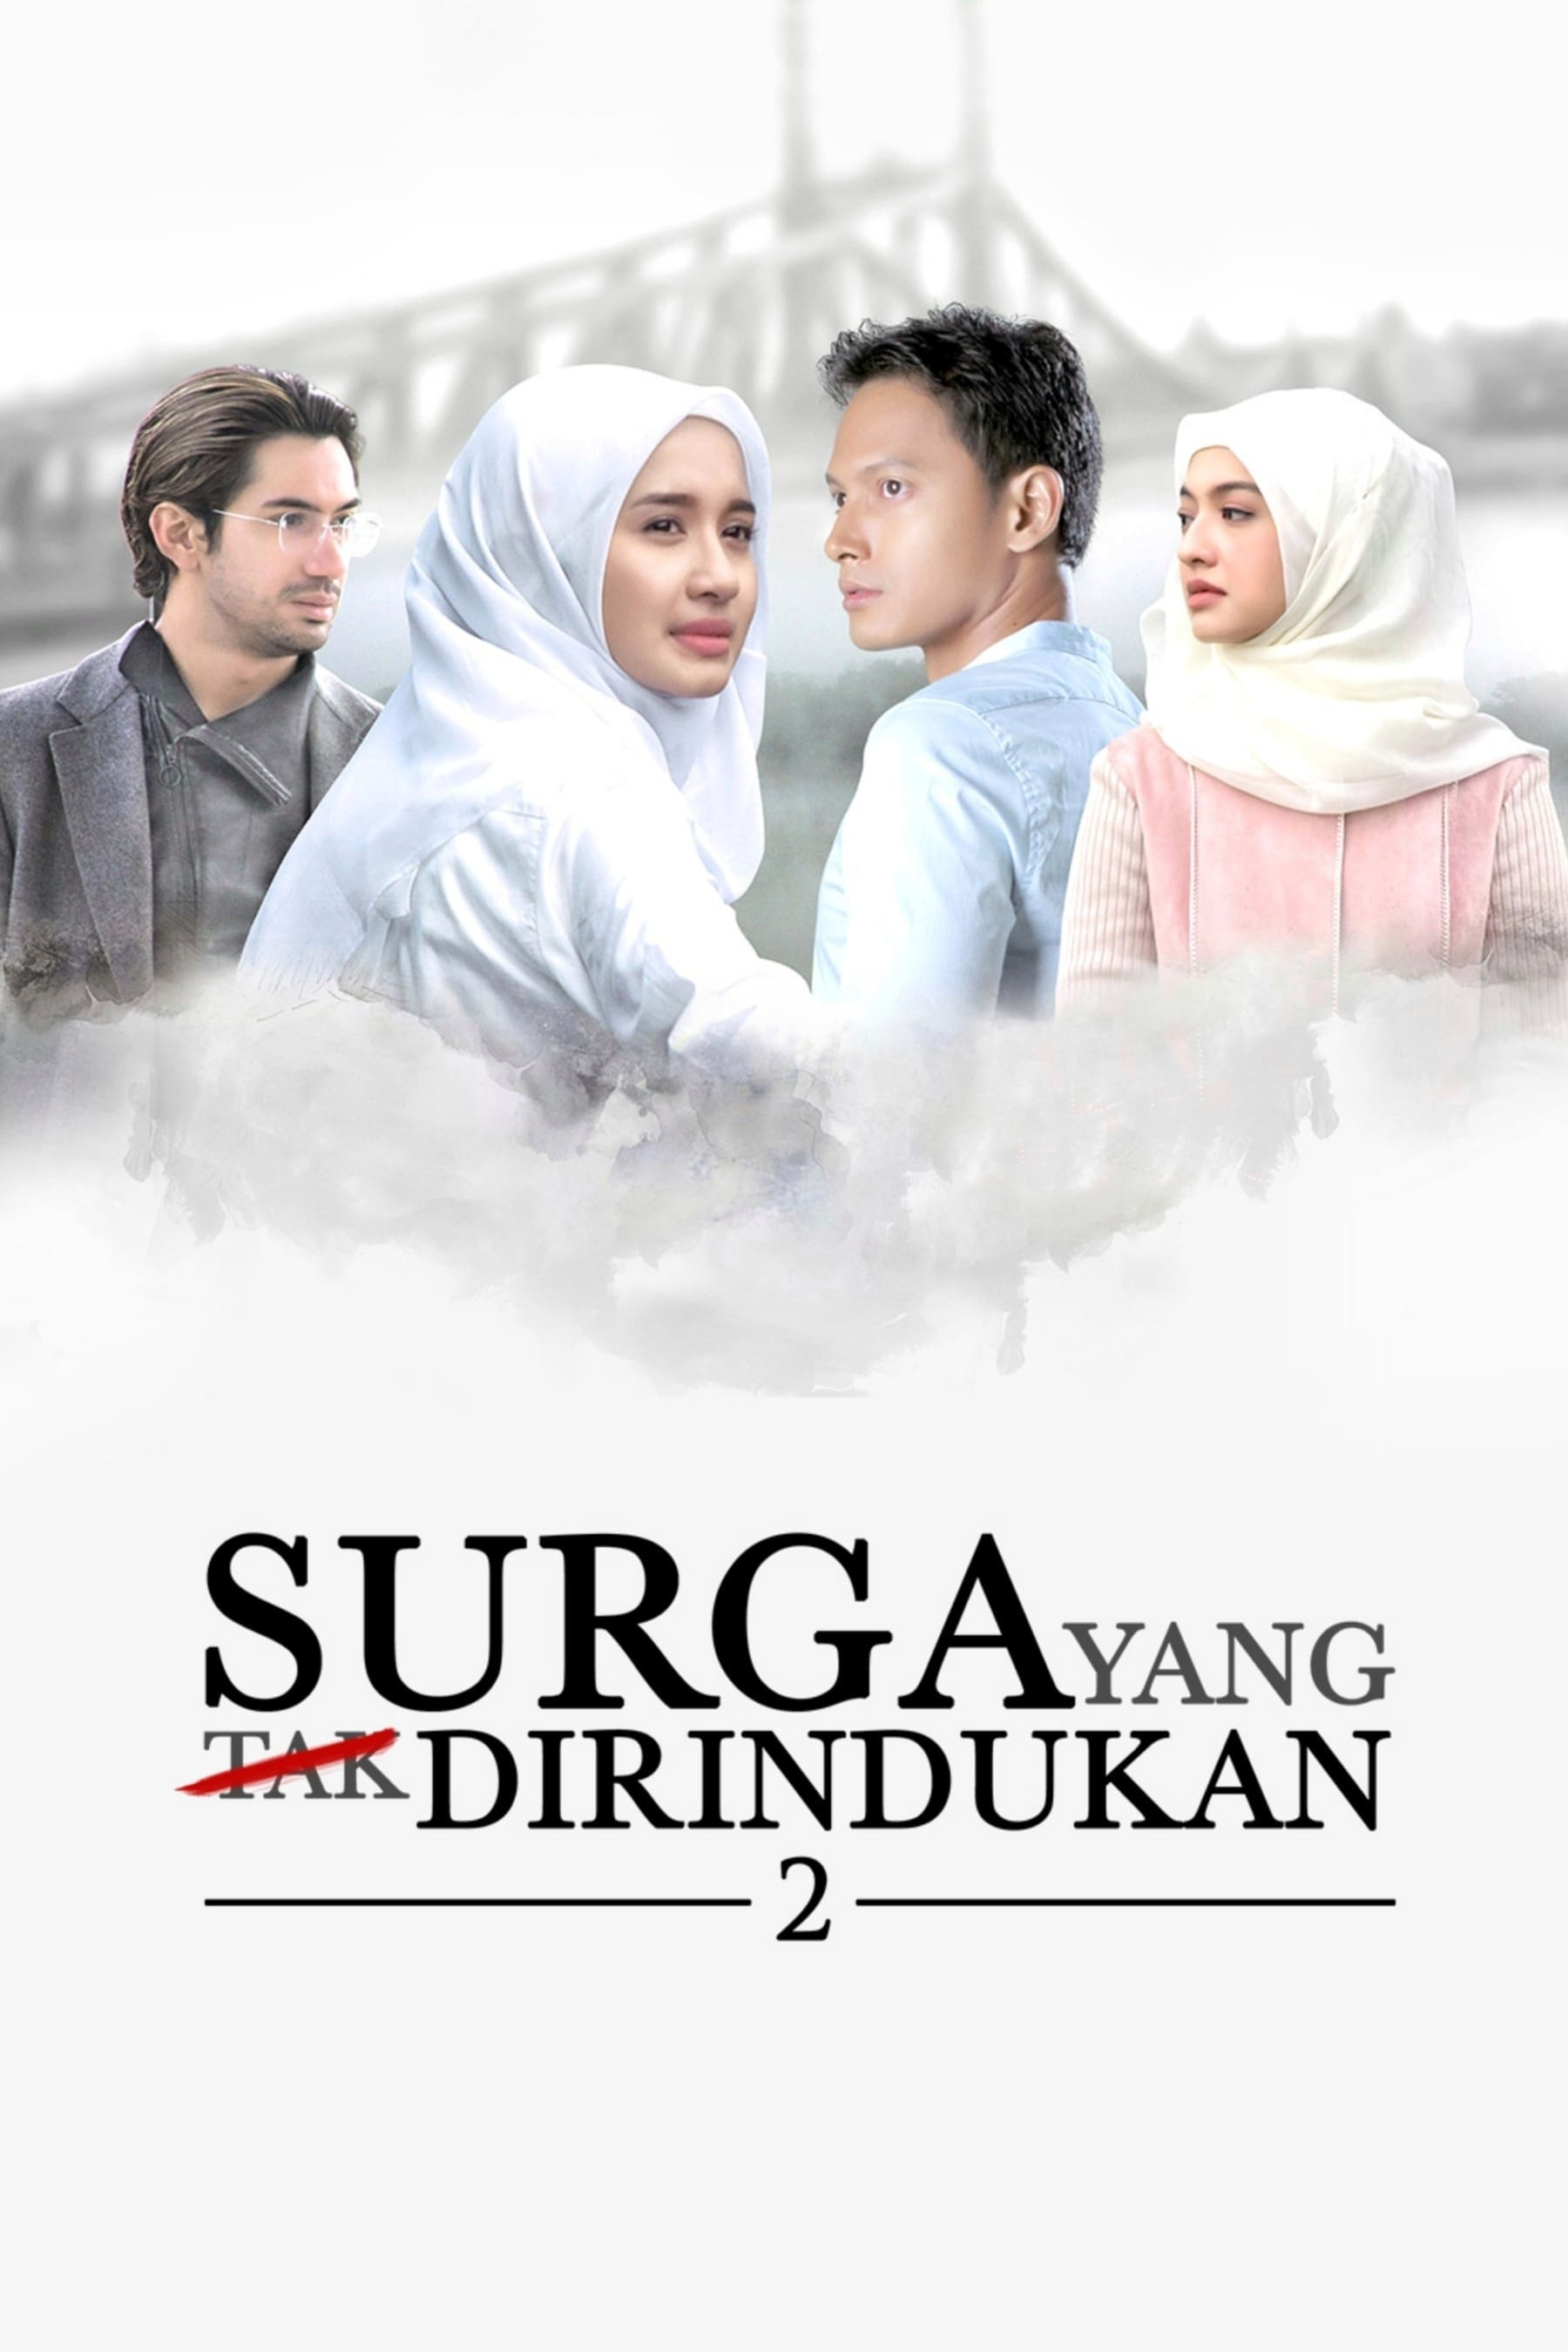 Download Film Surga Yang Tak Dirindukan 2 : download, surga, dirindukan, Heaven, Missed, (2017), Movie., Where, Watch, Streaming, Online